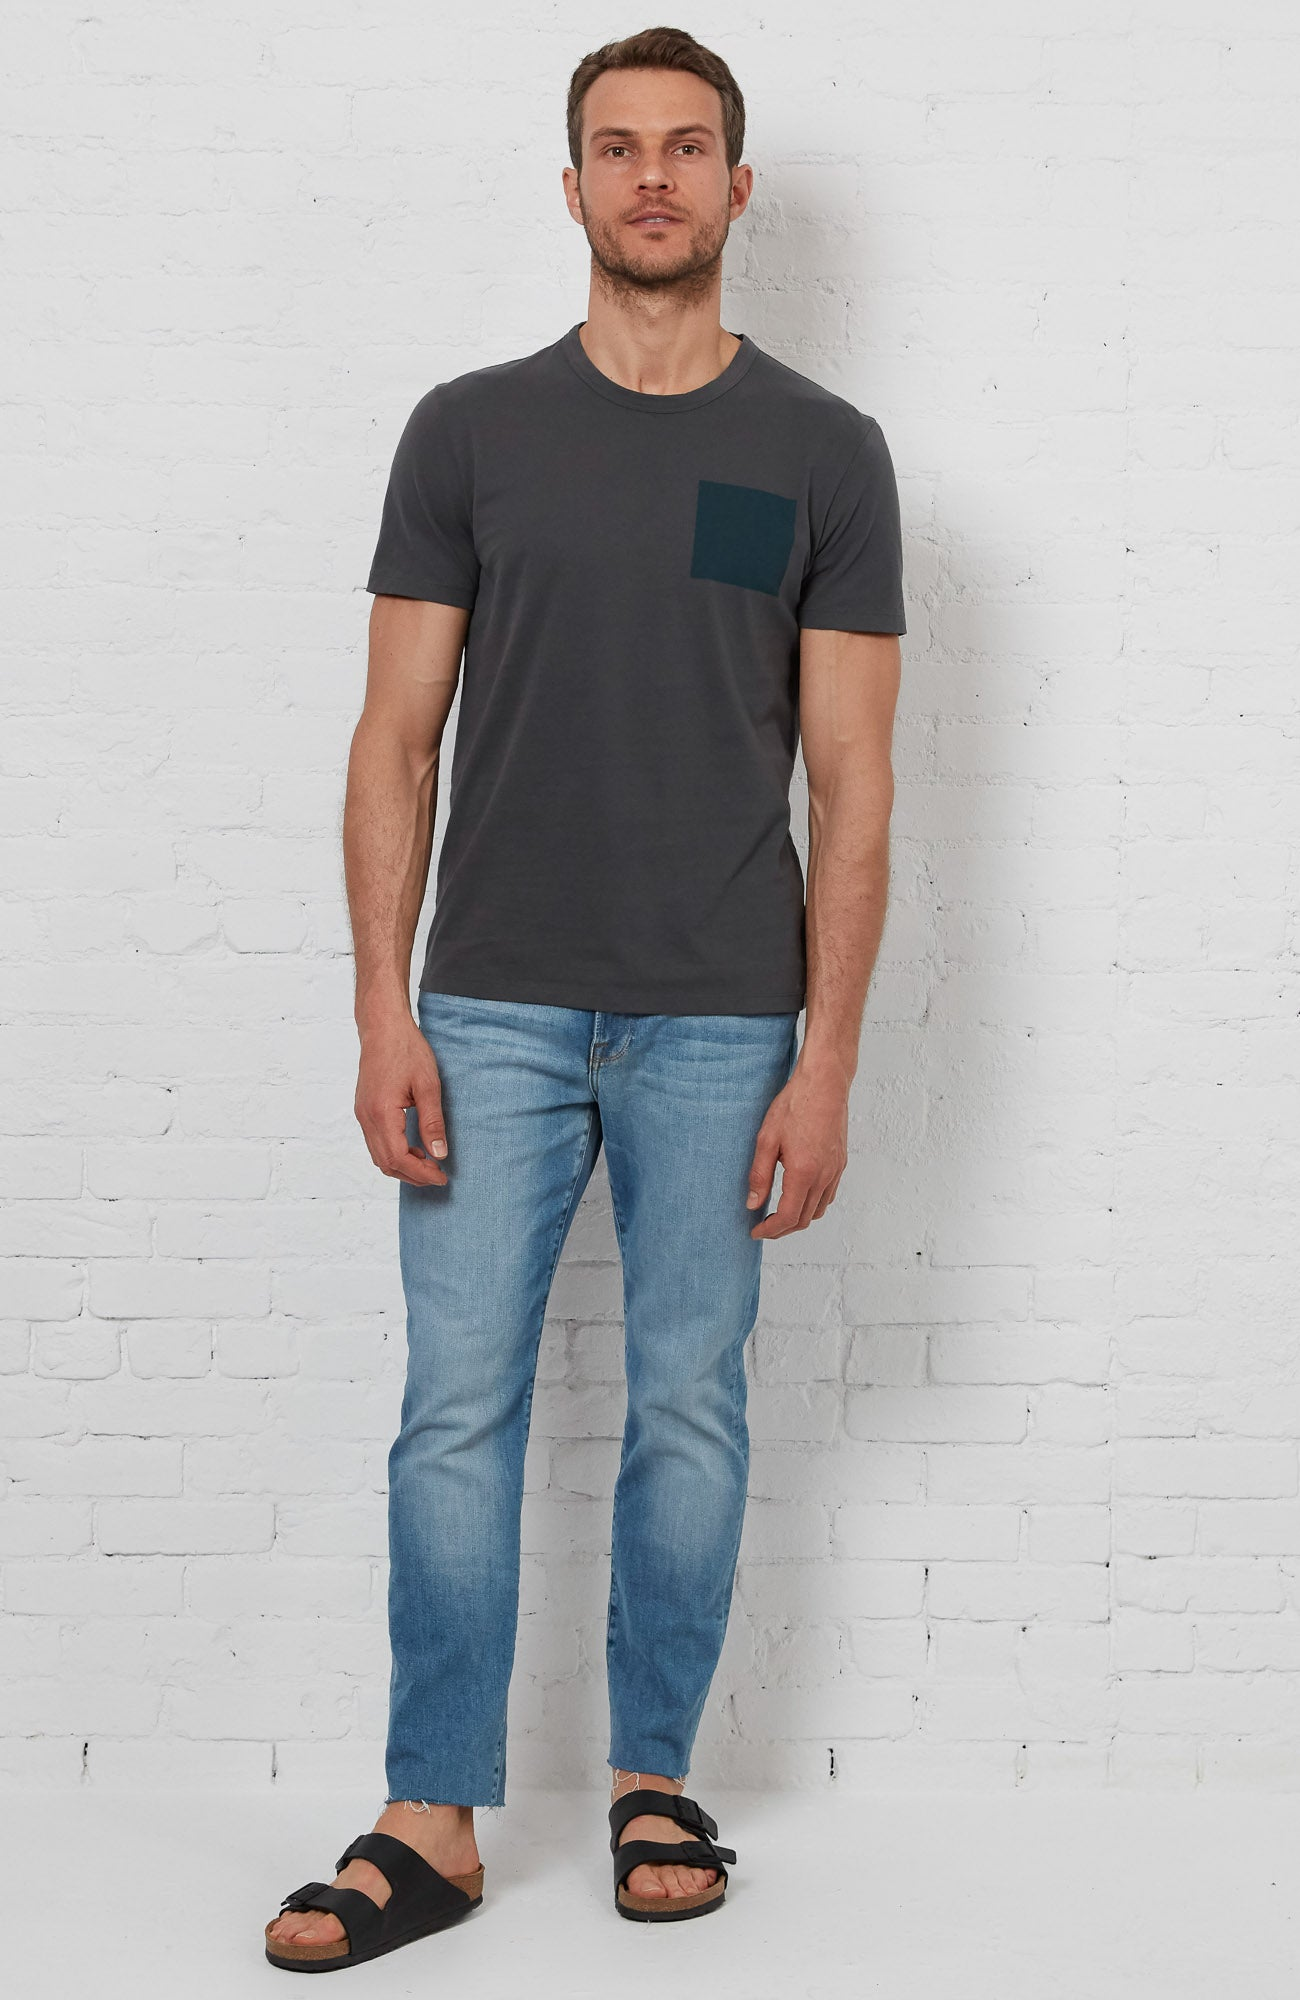 Blue Square Tee - Charcoal